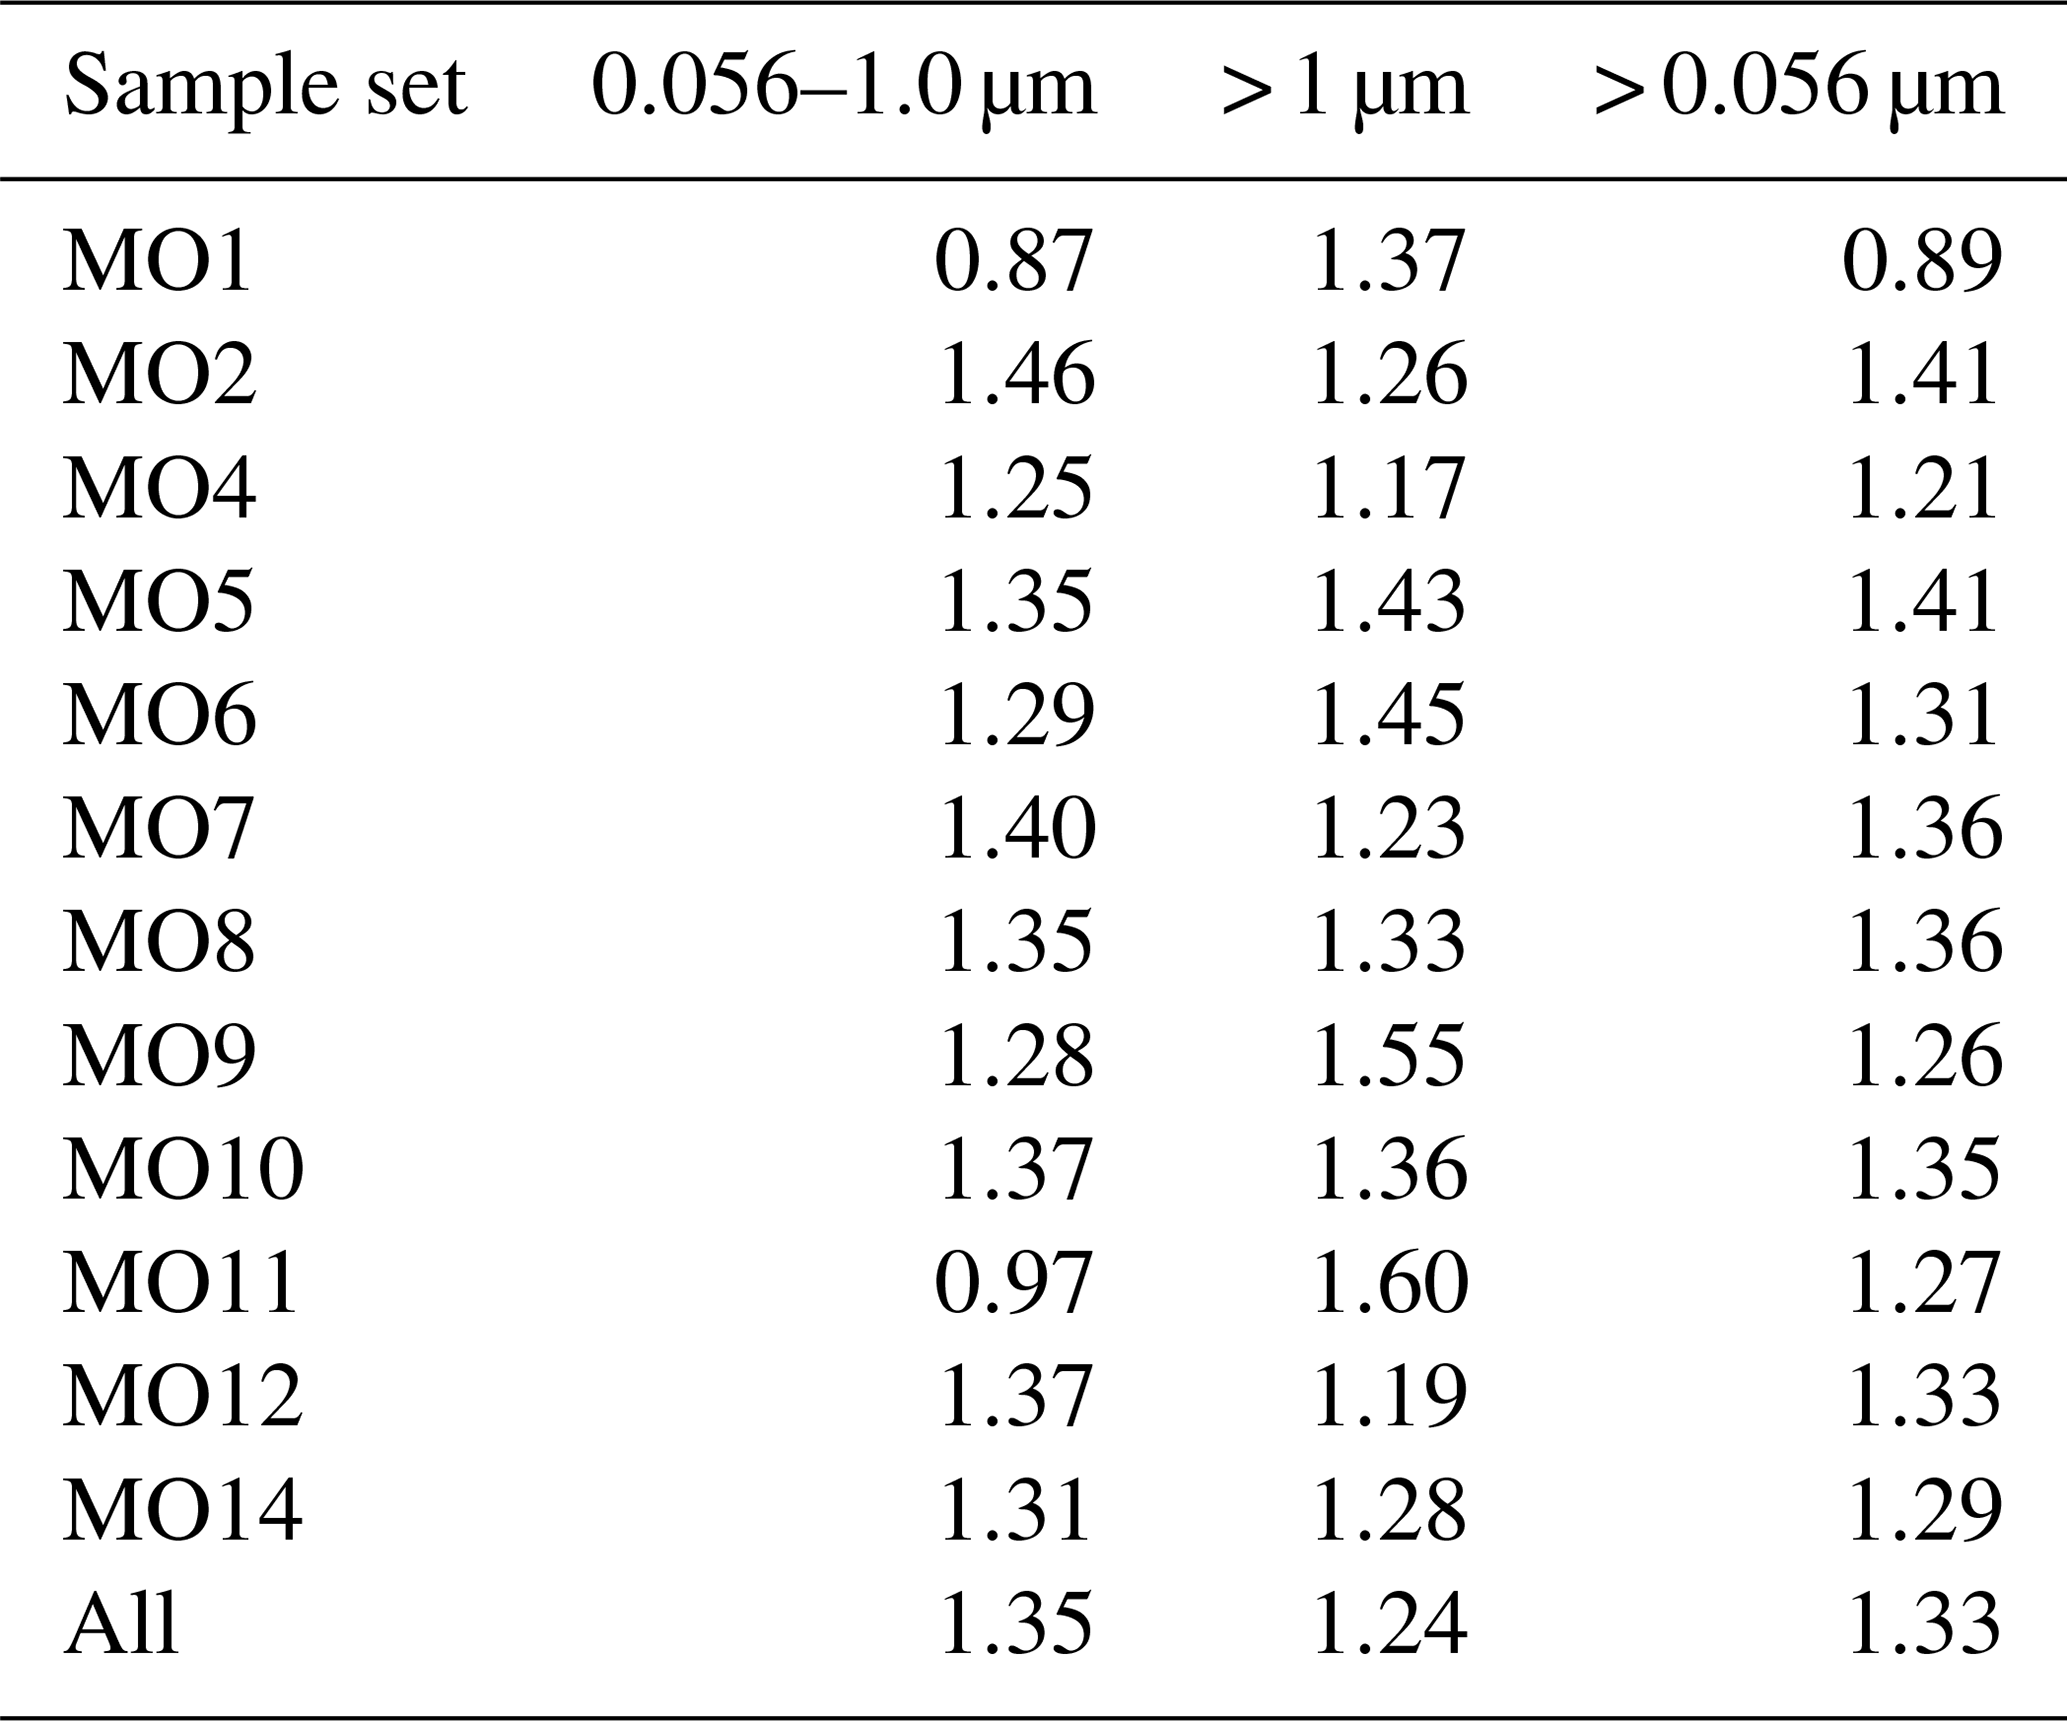 ACP - Size-resolved composition and morphology of